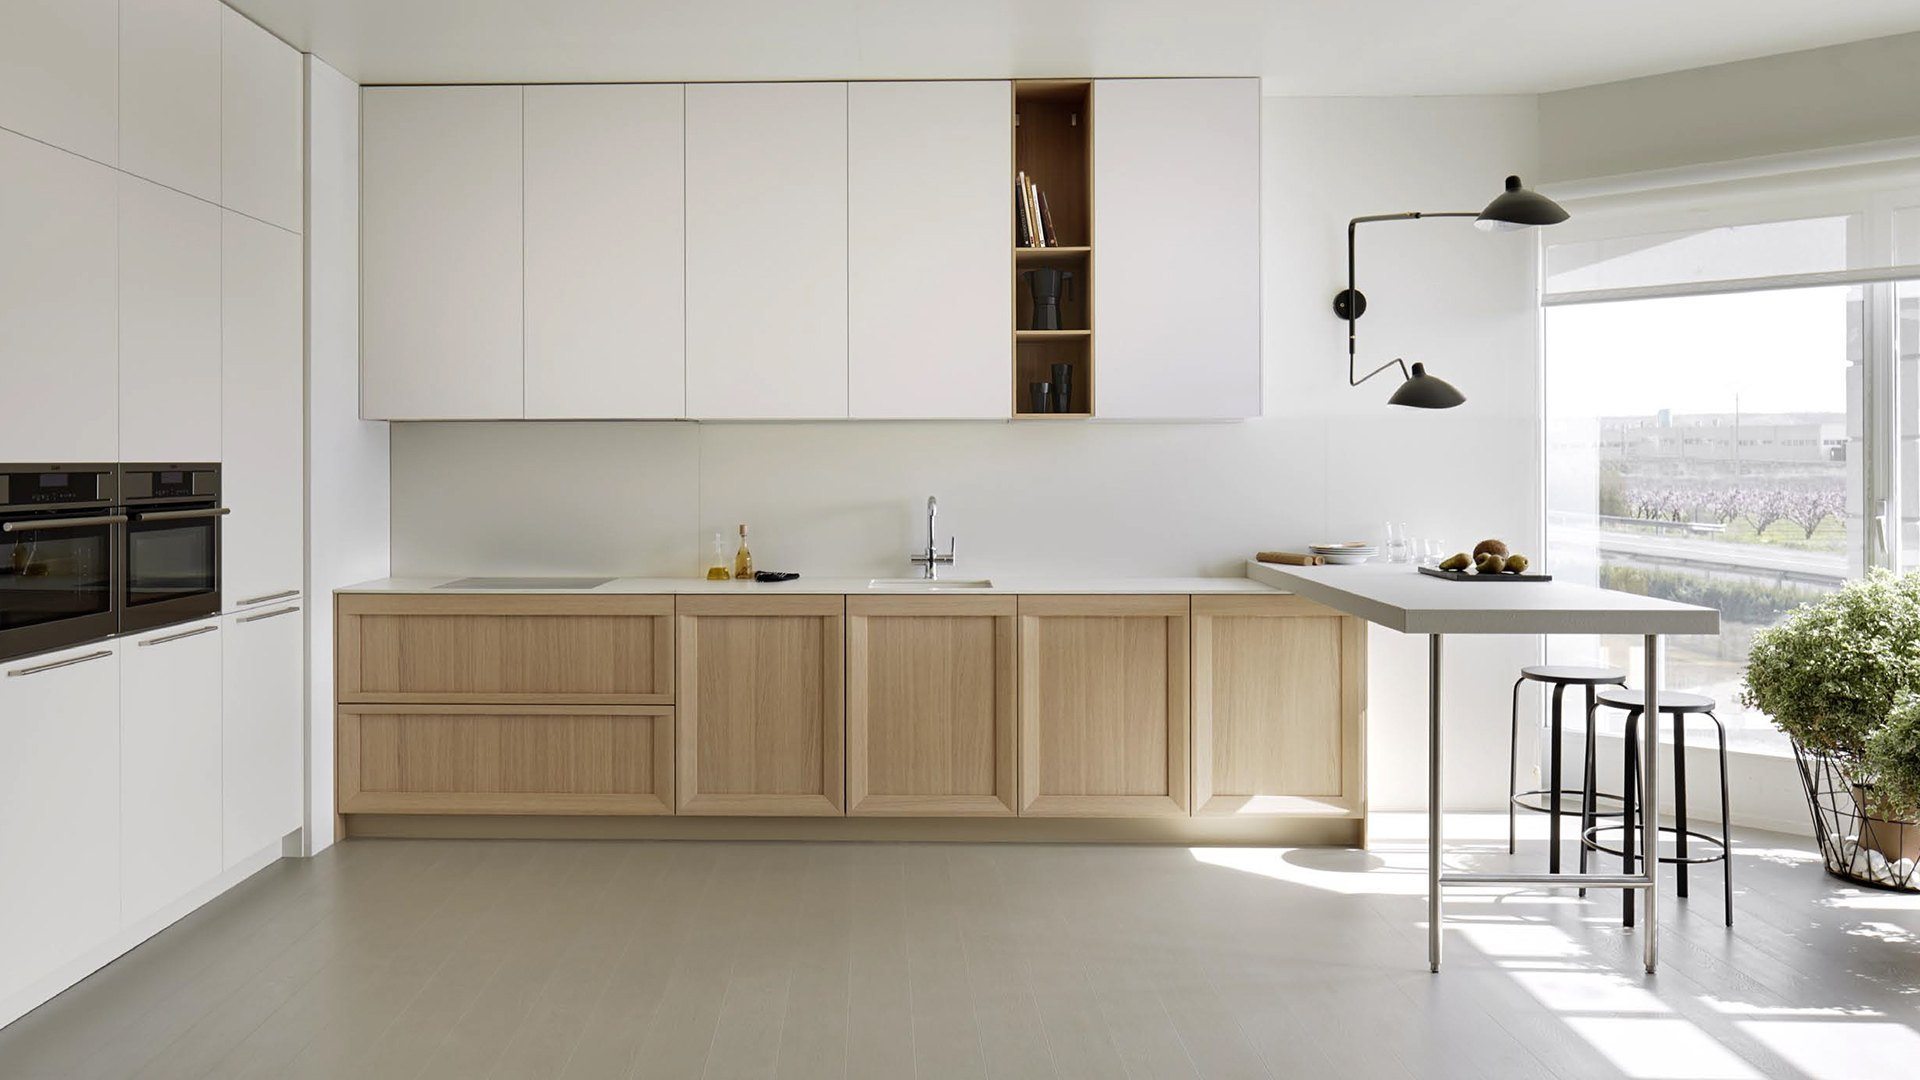 Soho roble natur blanco roto graden for Cocinas de madera de roble